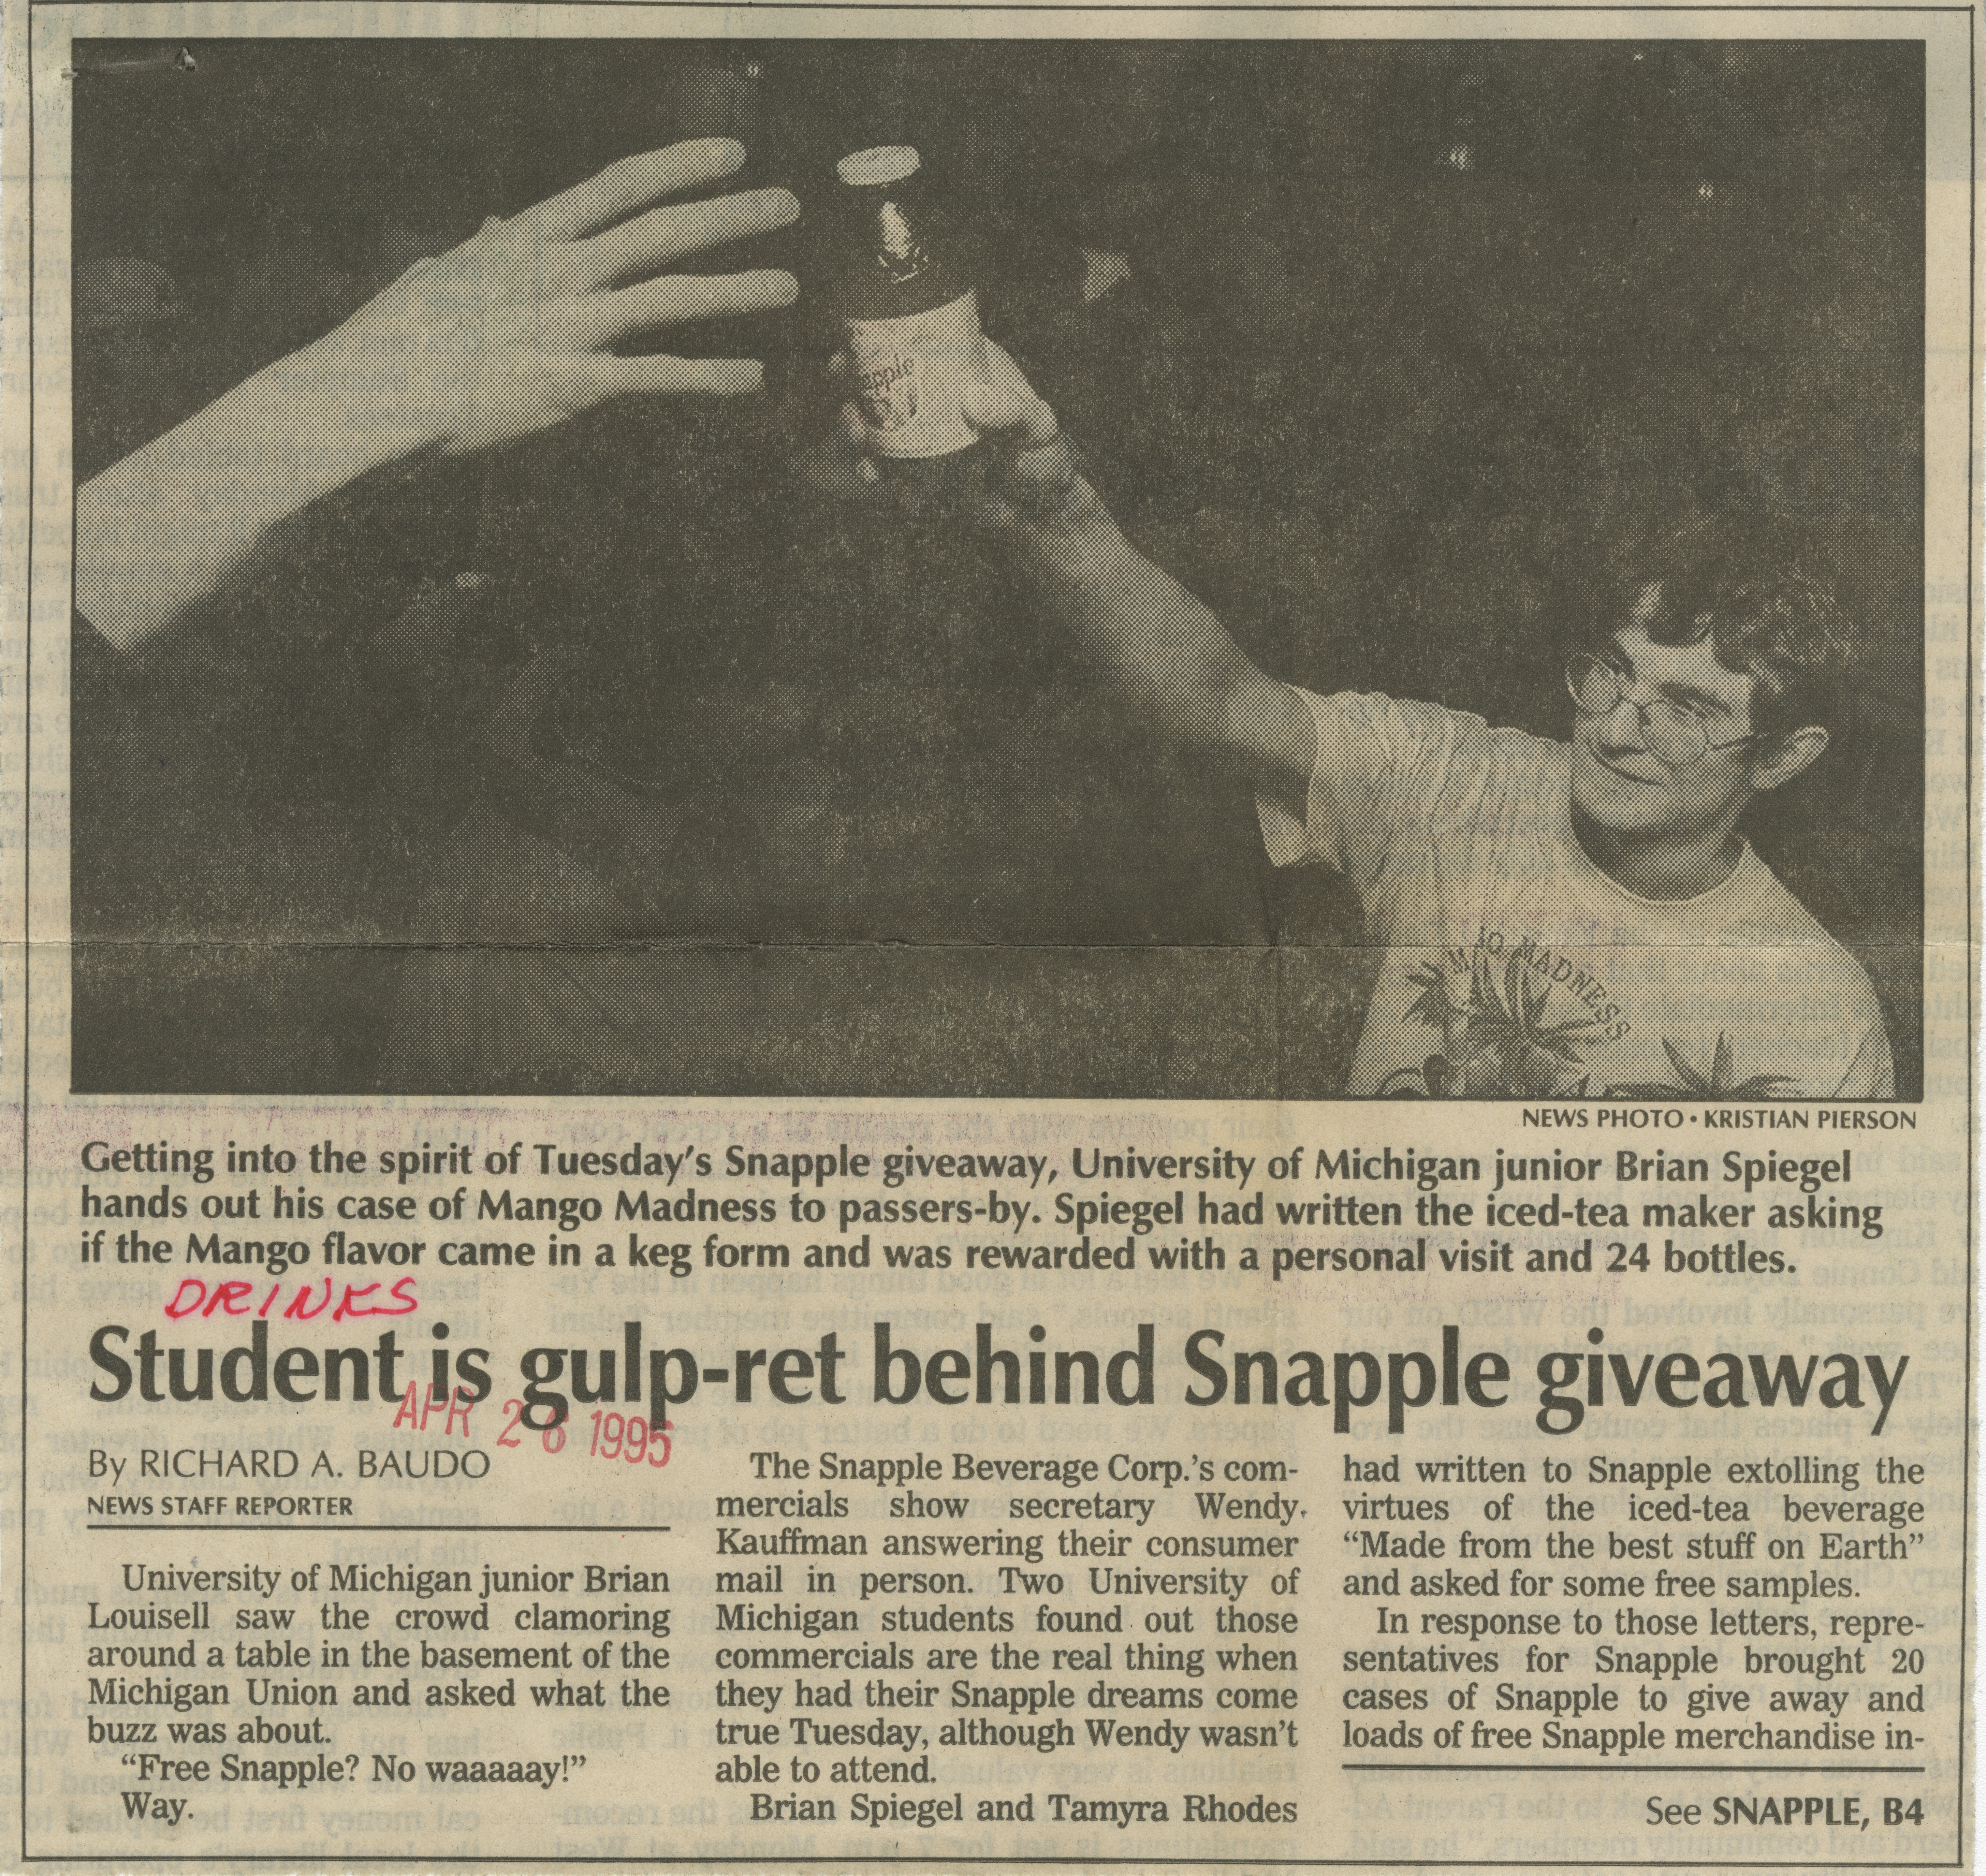 Student Is Gulp-Ret Behind Snapple Giveaway image